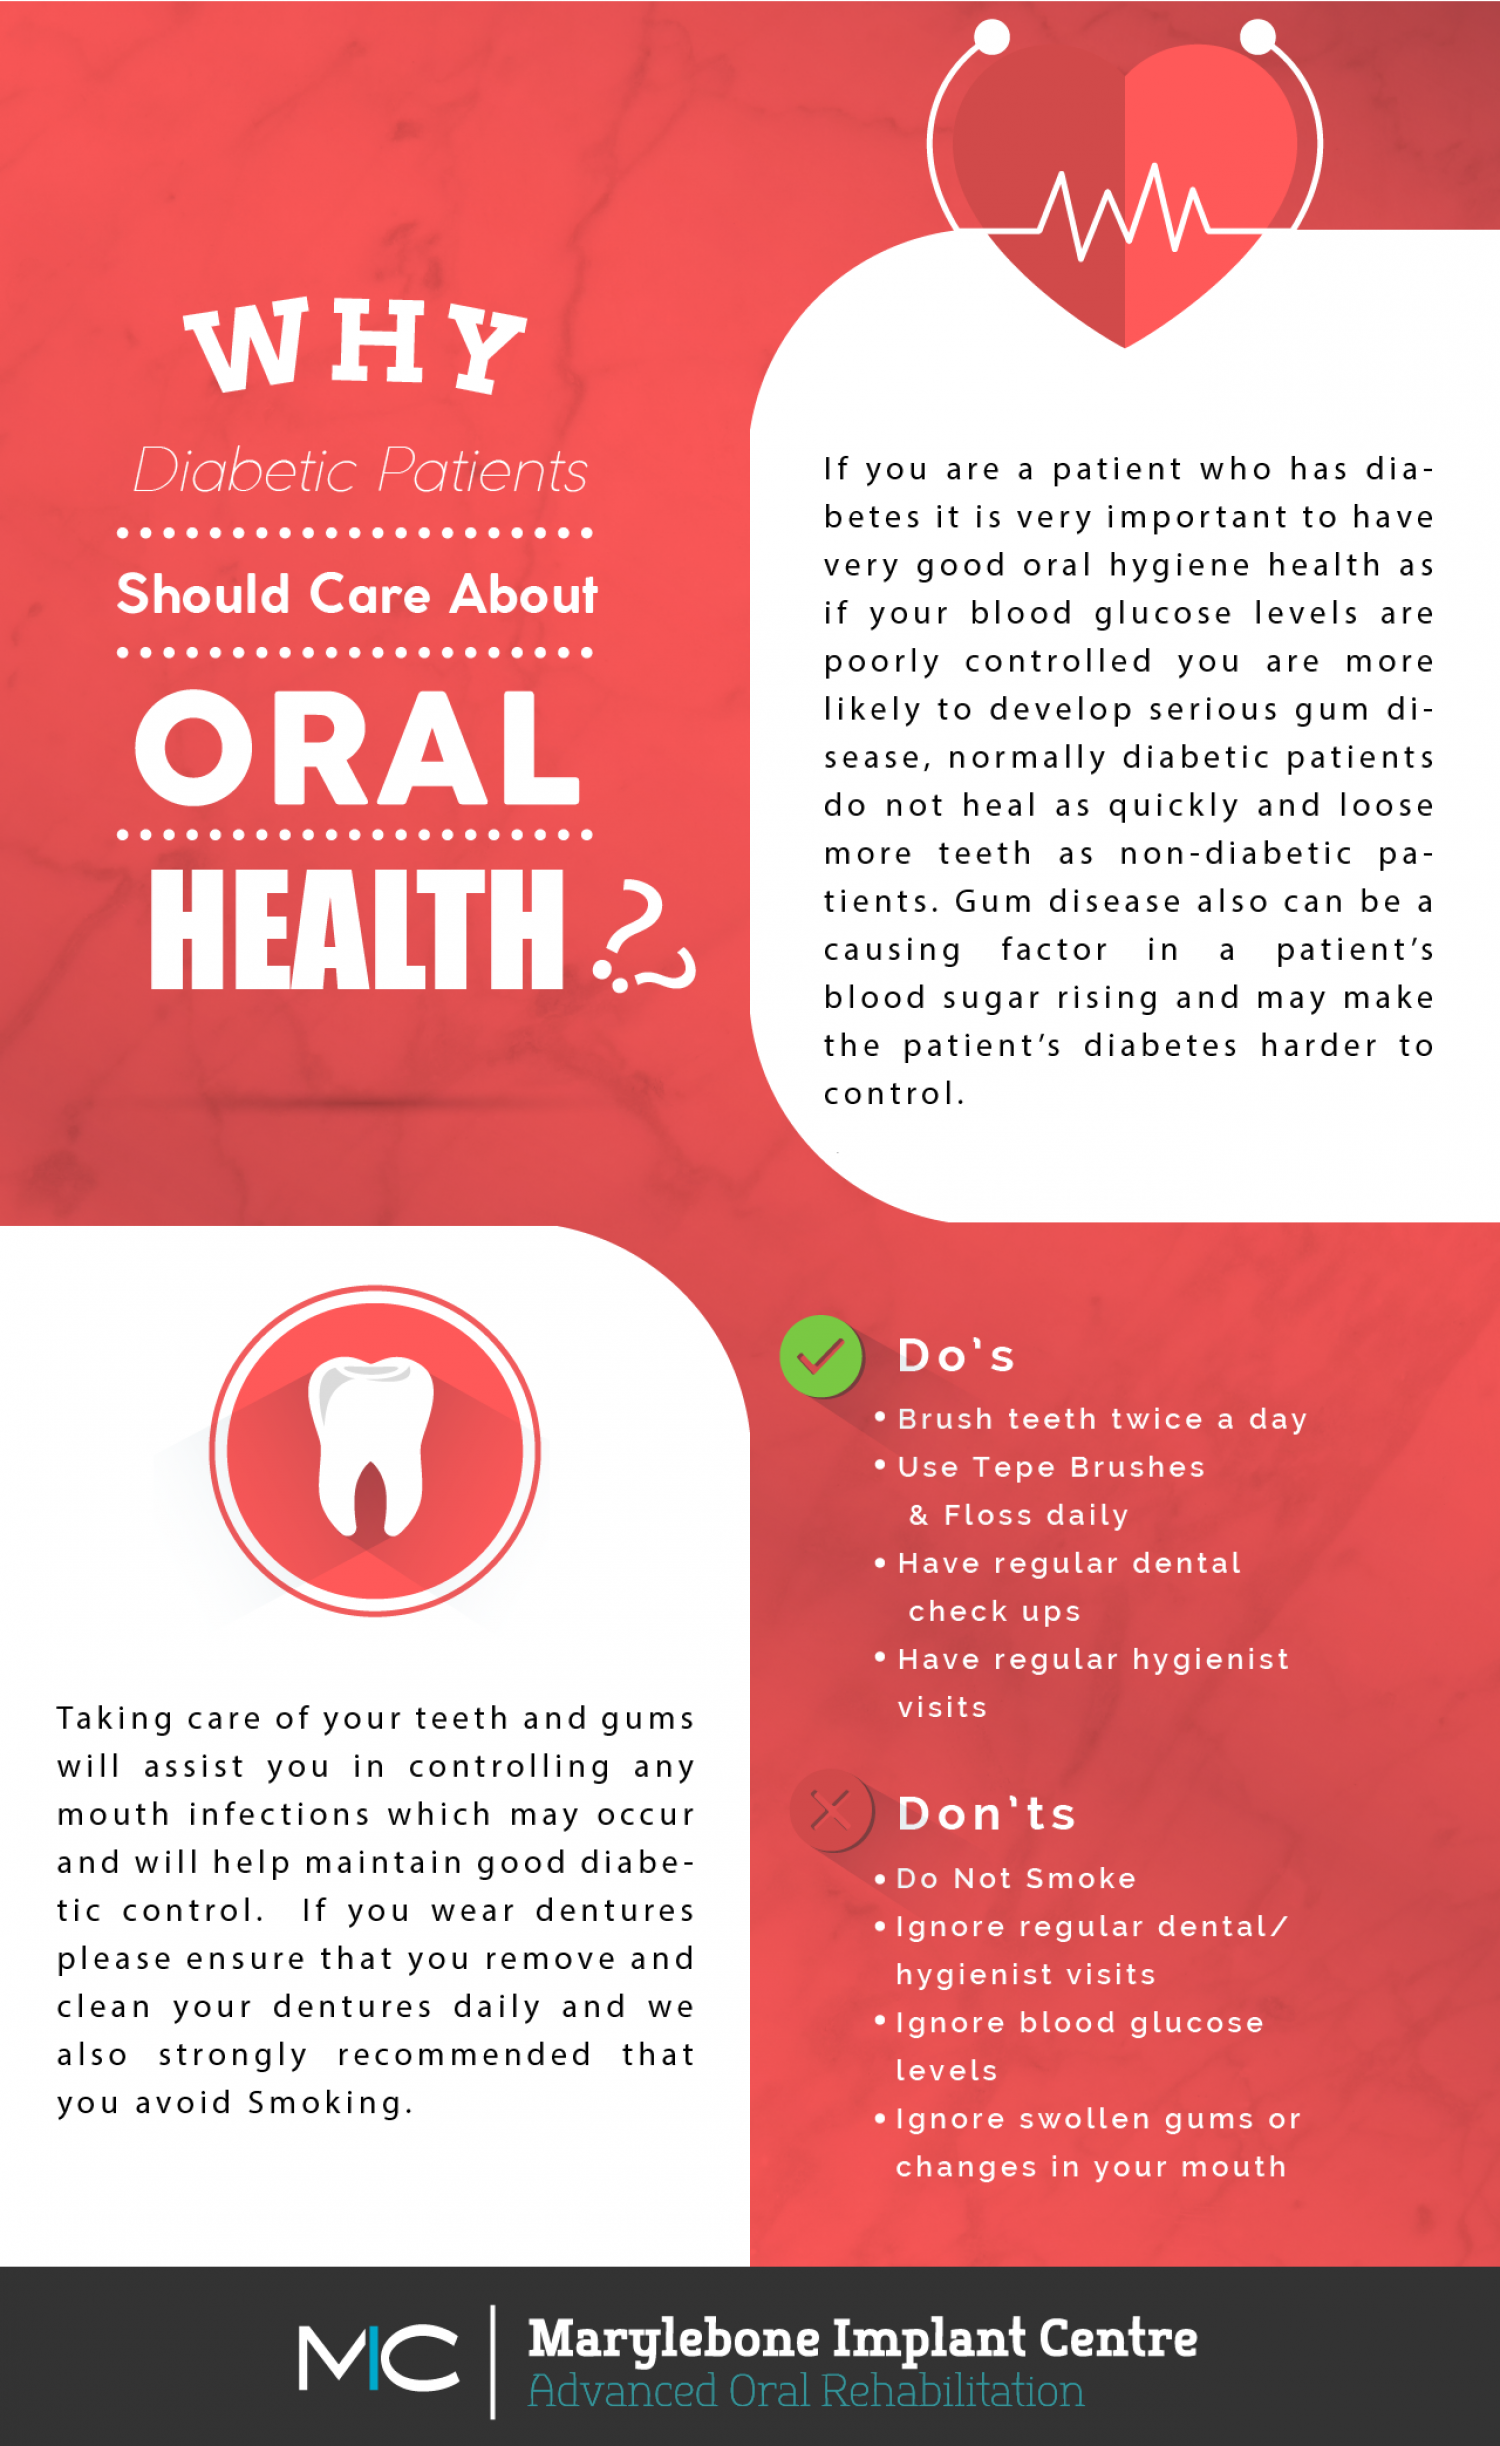 Why Diabetic Patients Should Care About Oral Health Infographic